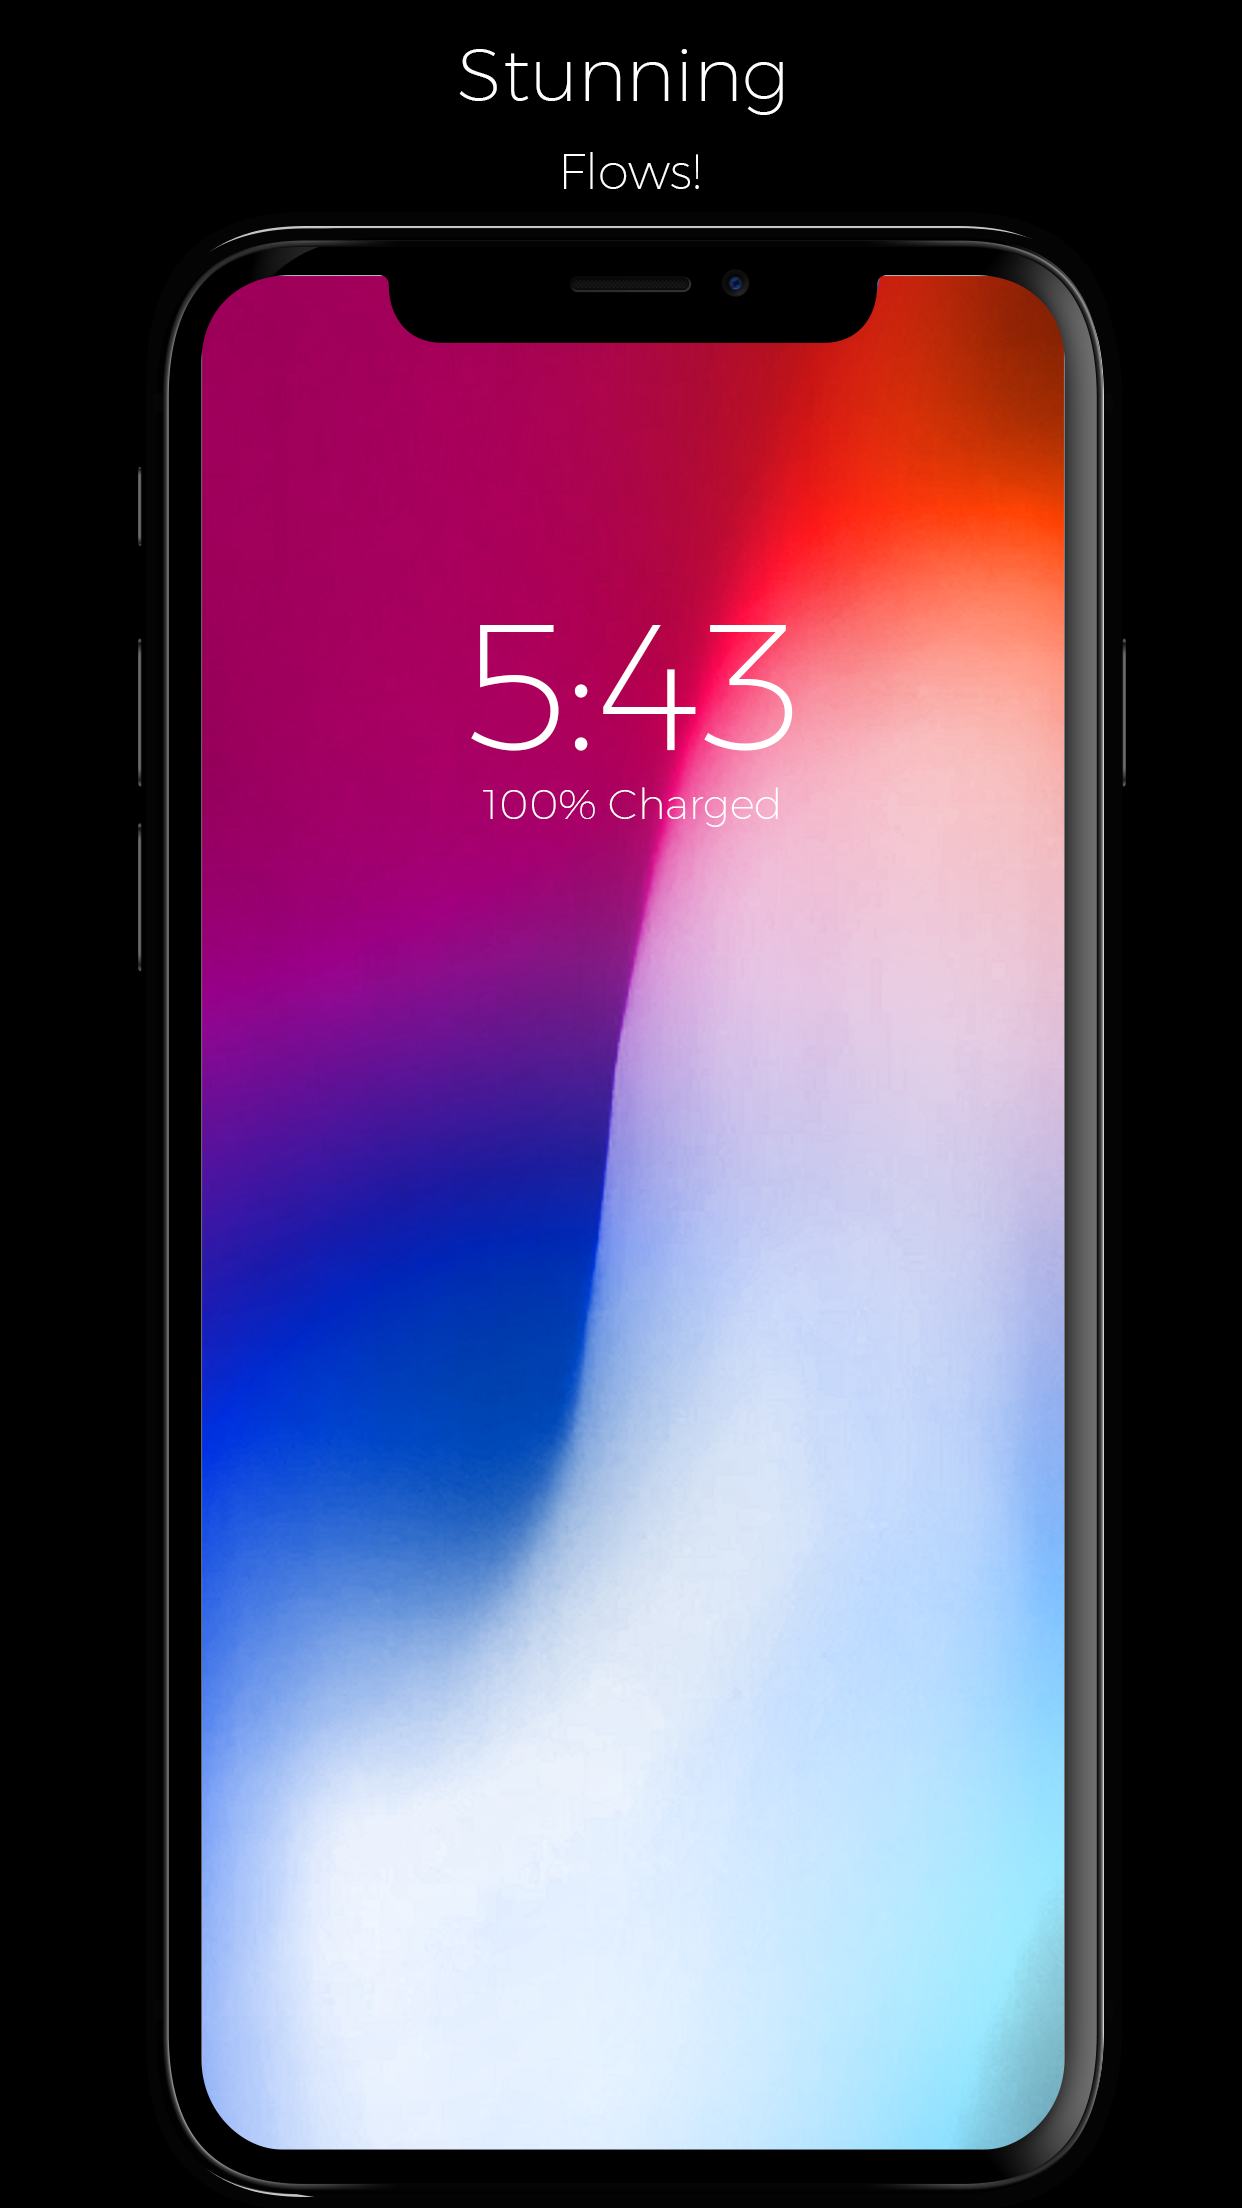 iPhone 8 Live Wallpapers & iPhone X Live Wallpapers